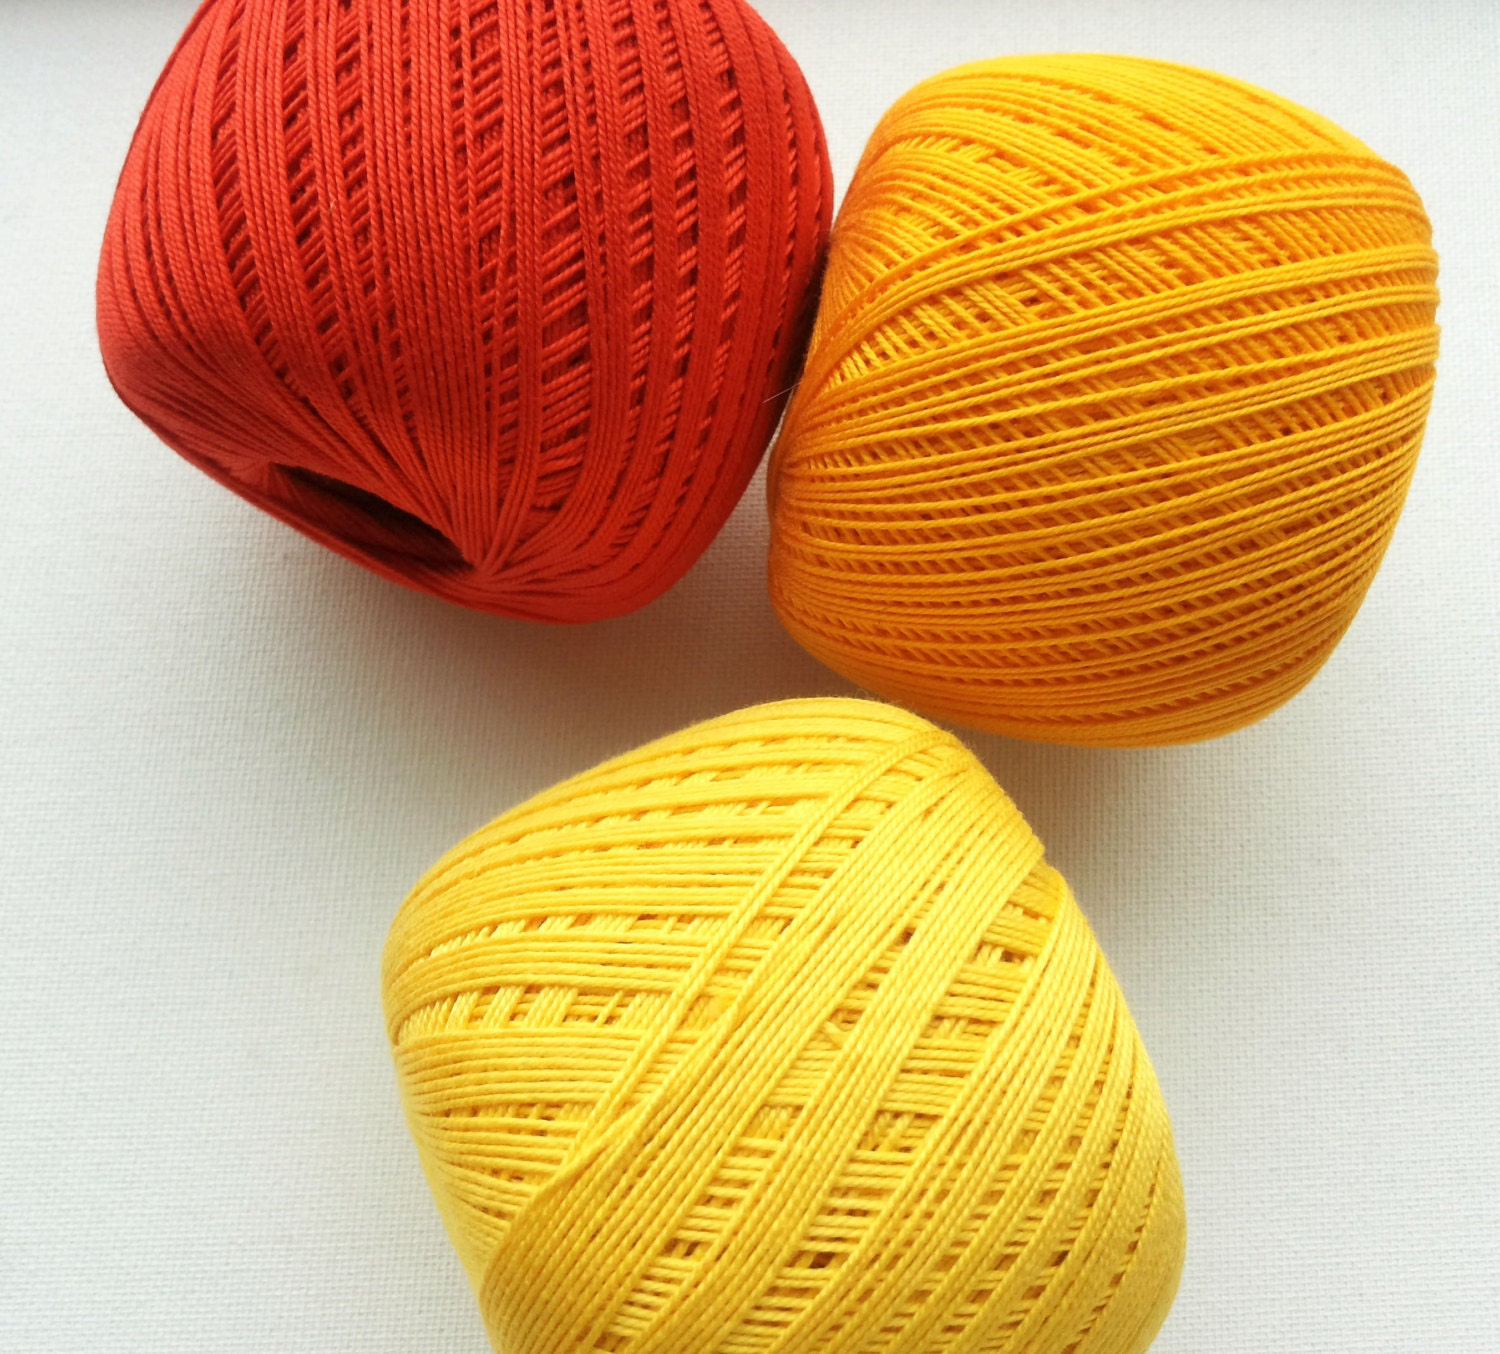 crochet cotton thread size 10 50g x 250m 3ply by Fiscraftland